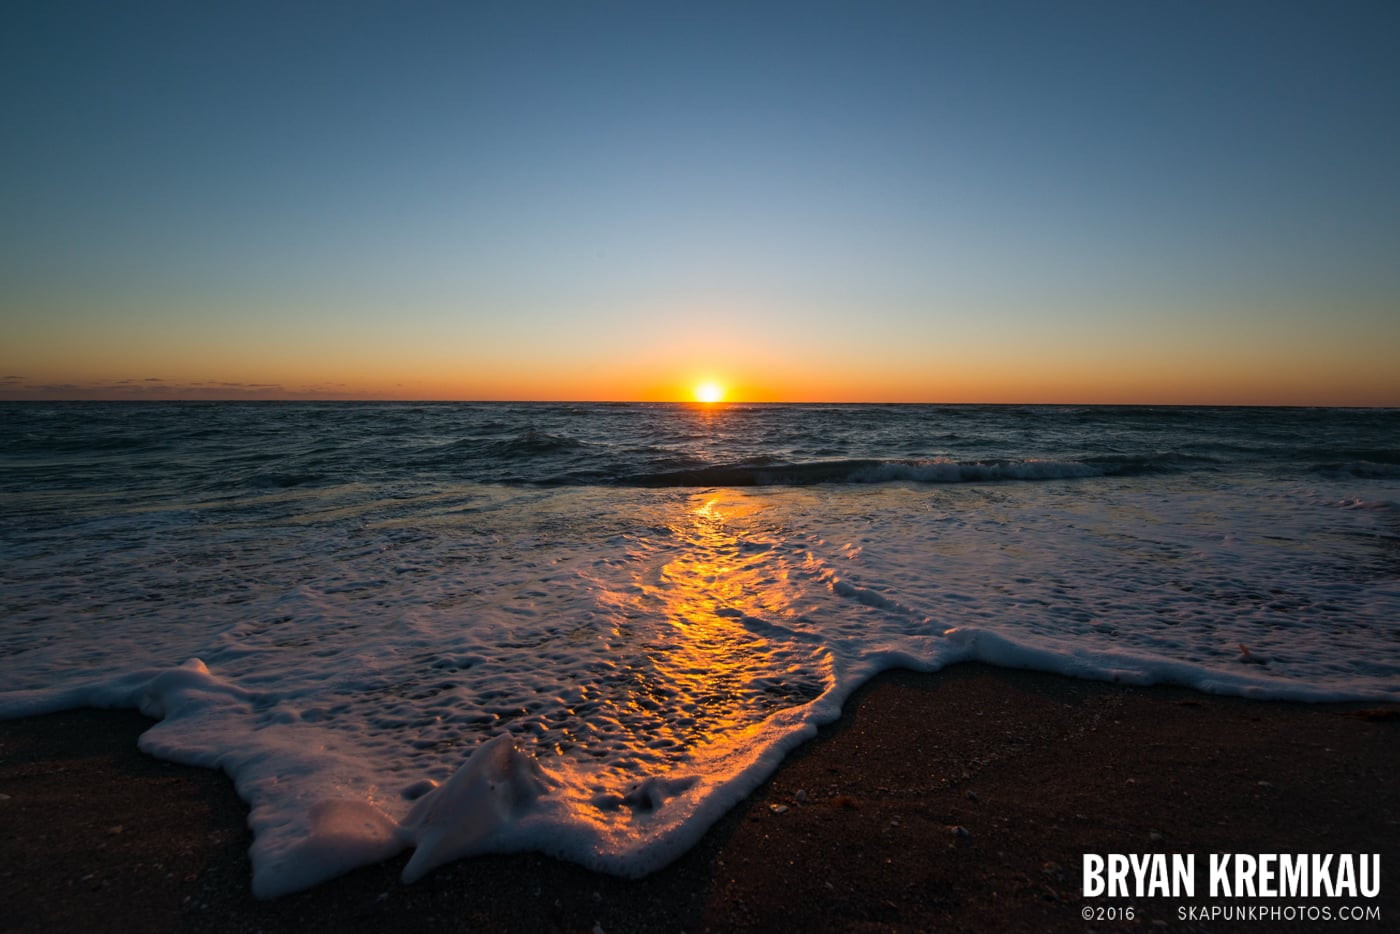 Sunsets, Astrophotography & Birds @ Venice, Florida - 10.25.14 - 11.5.14 (99)